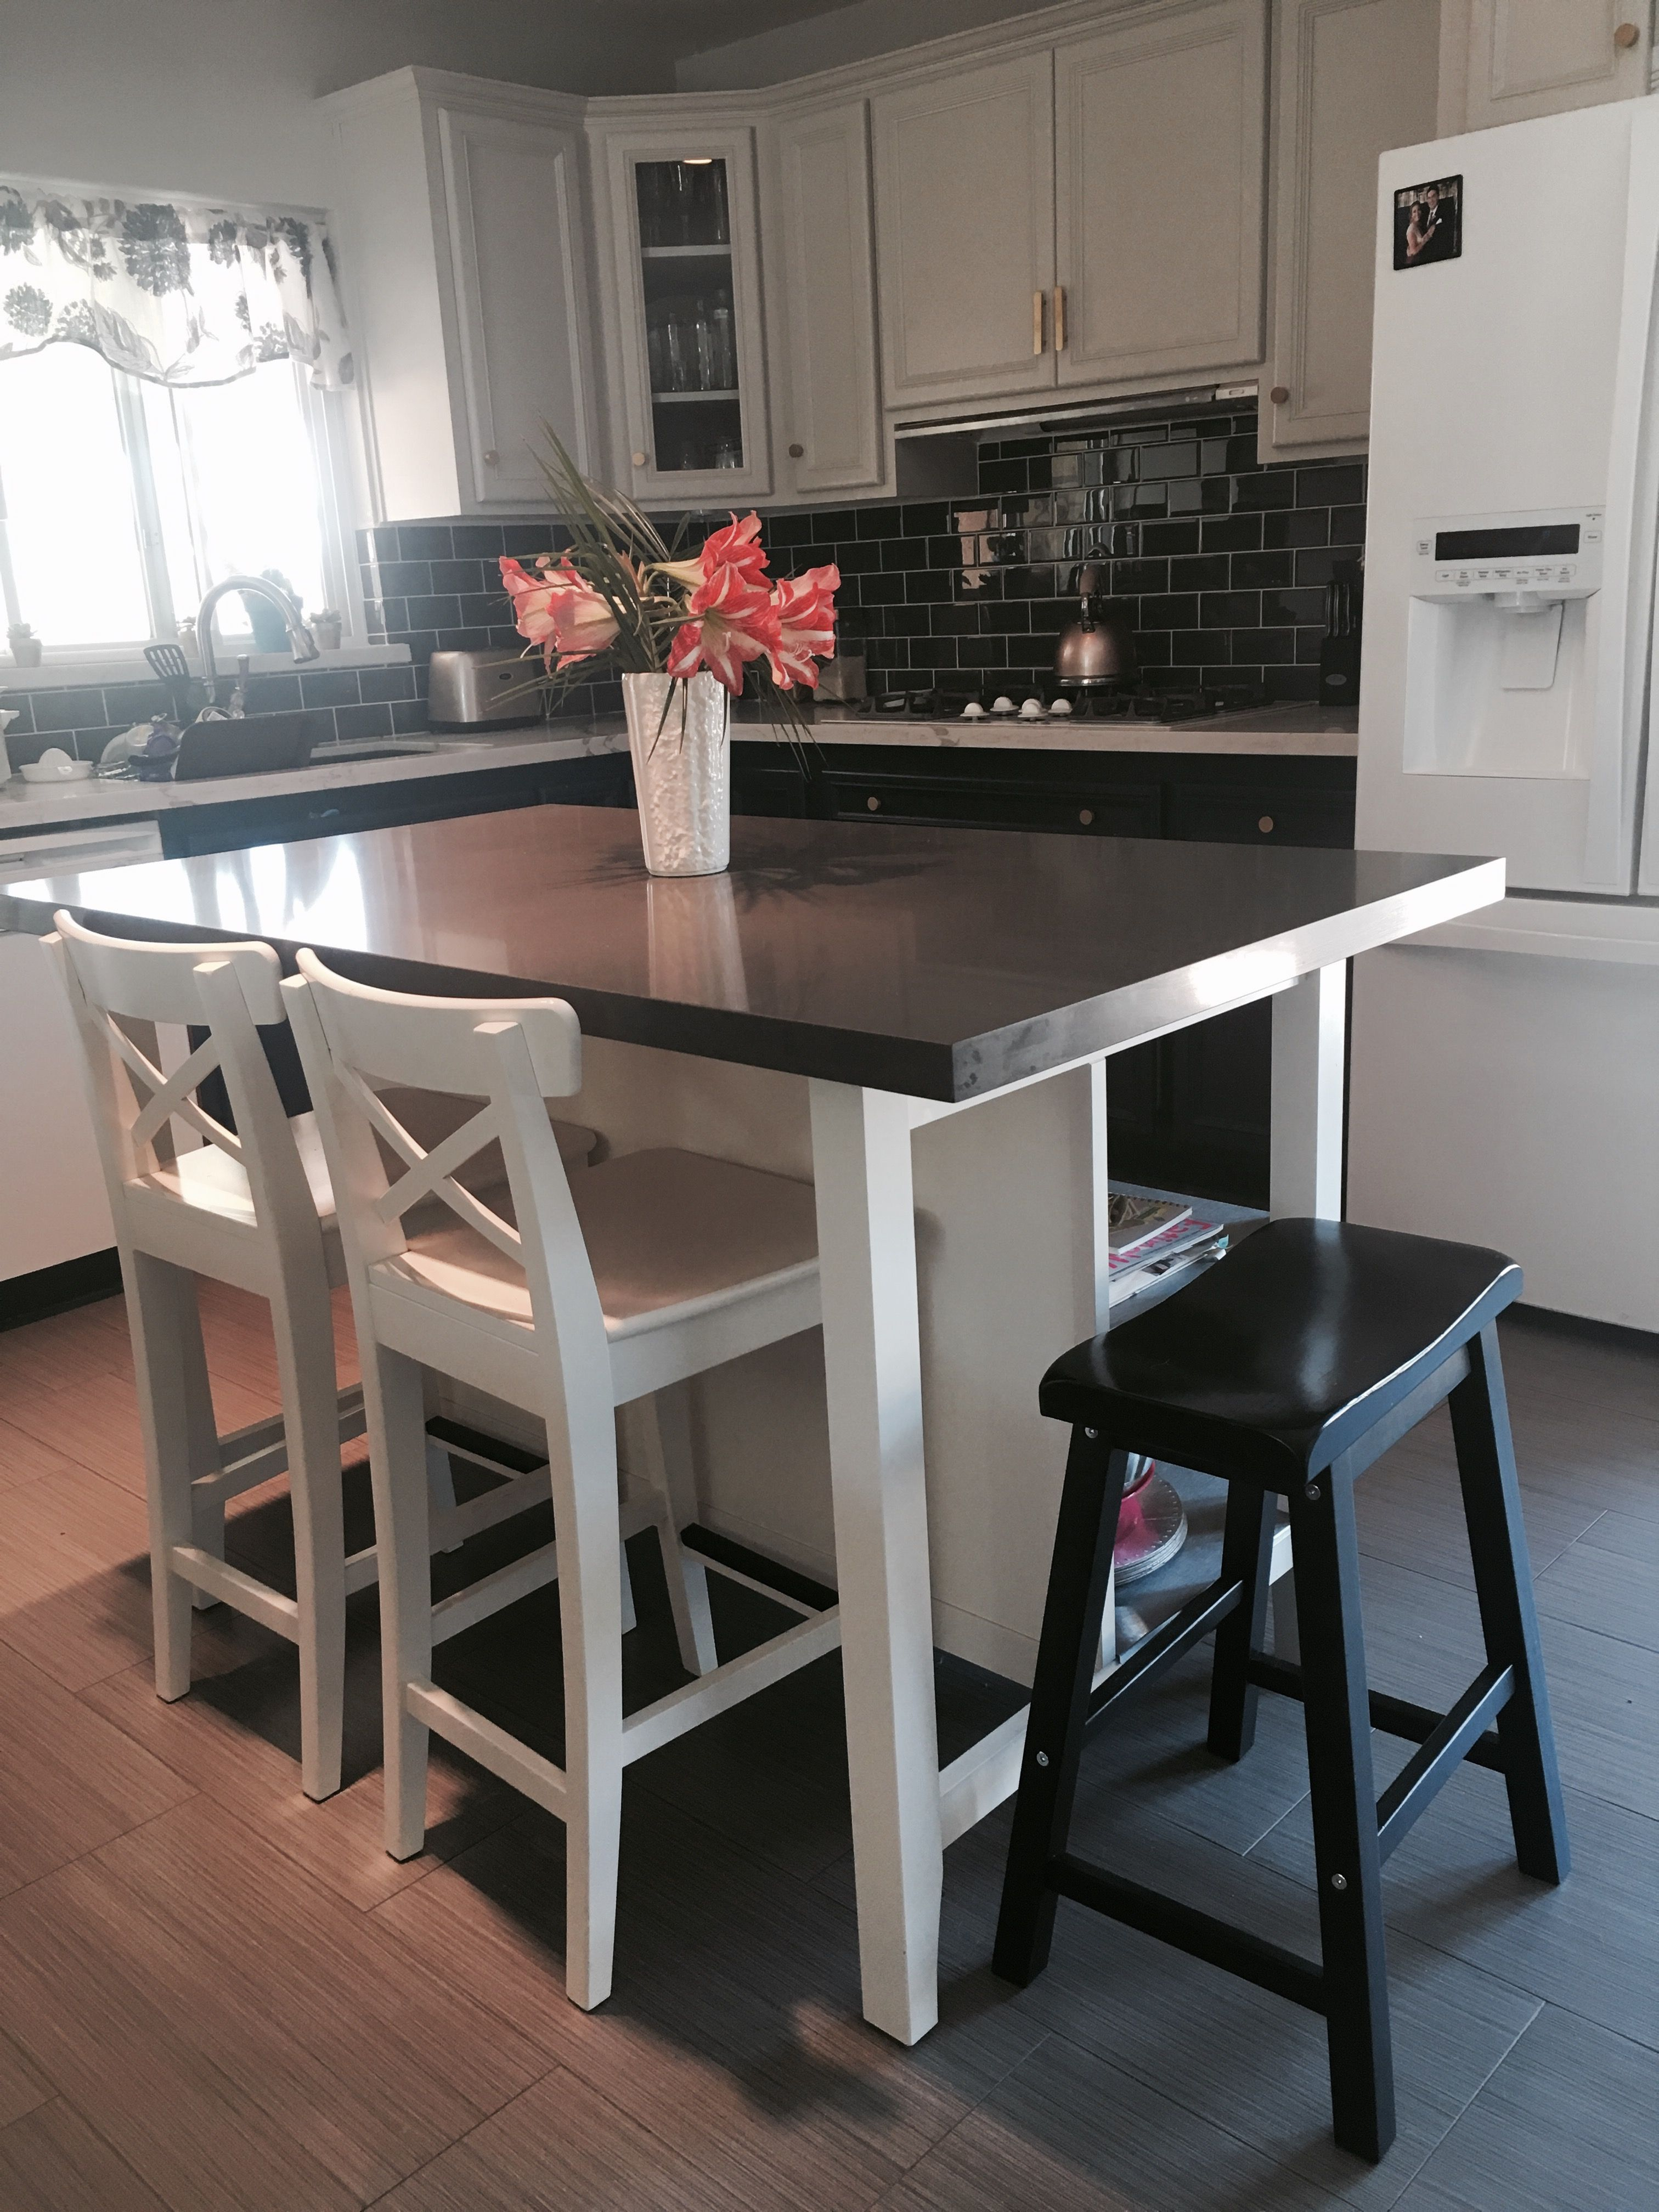 kitchen islands ikea small buffet stenstorp island hack here is another view of our we added grey quartz on top with more room to add a saddle bar stool